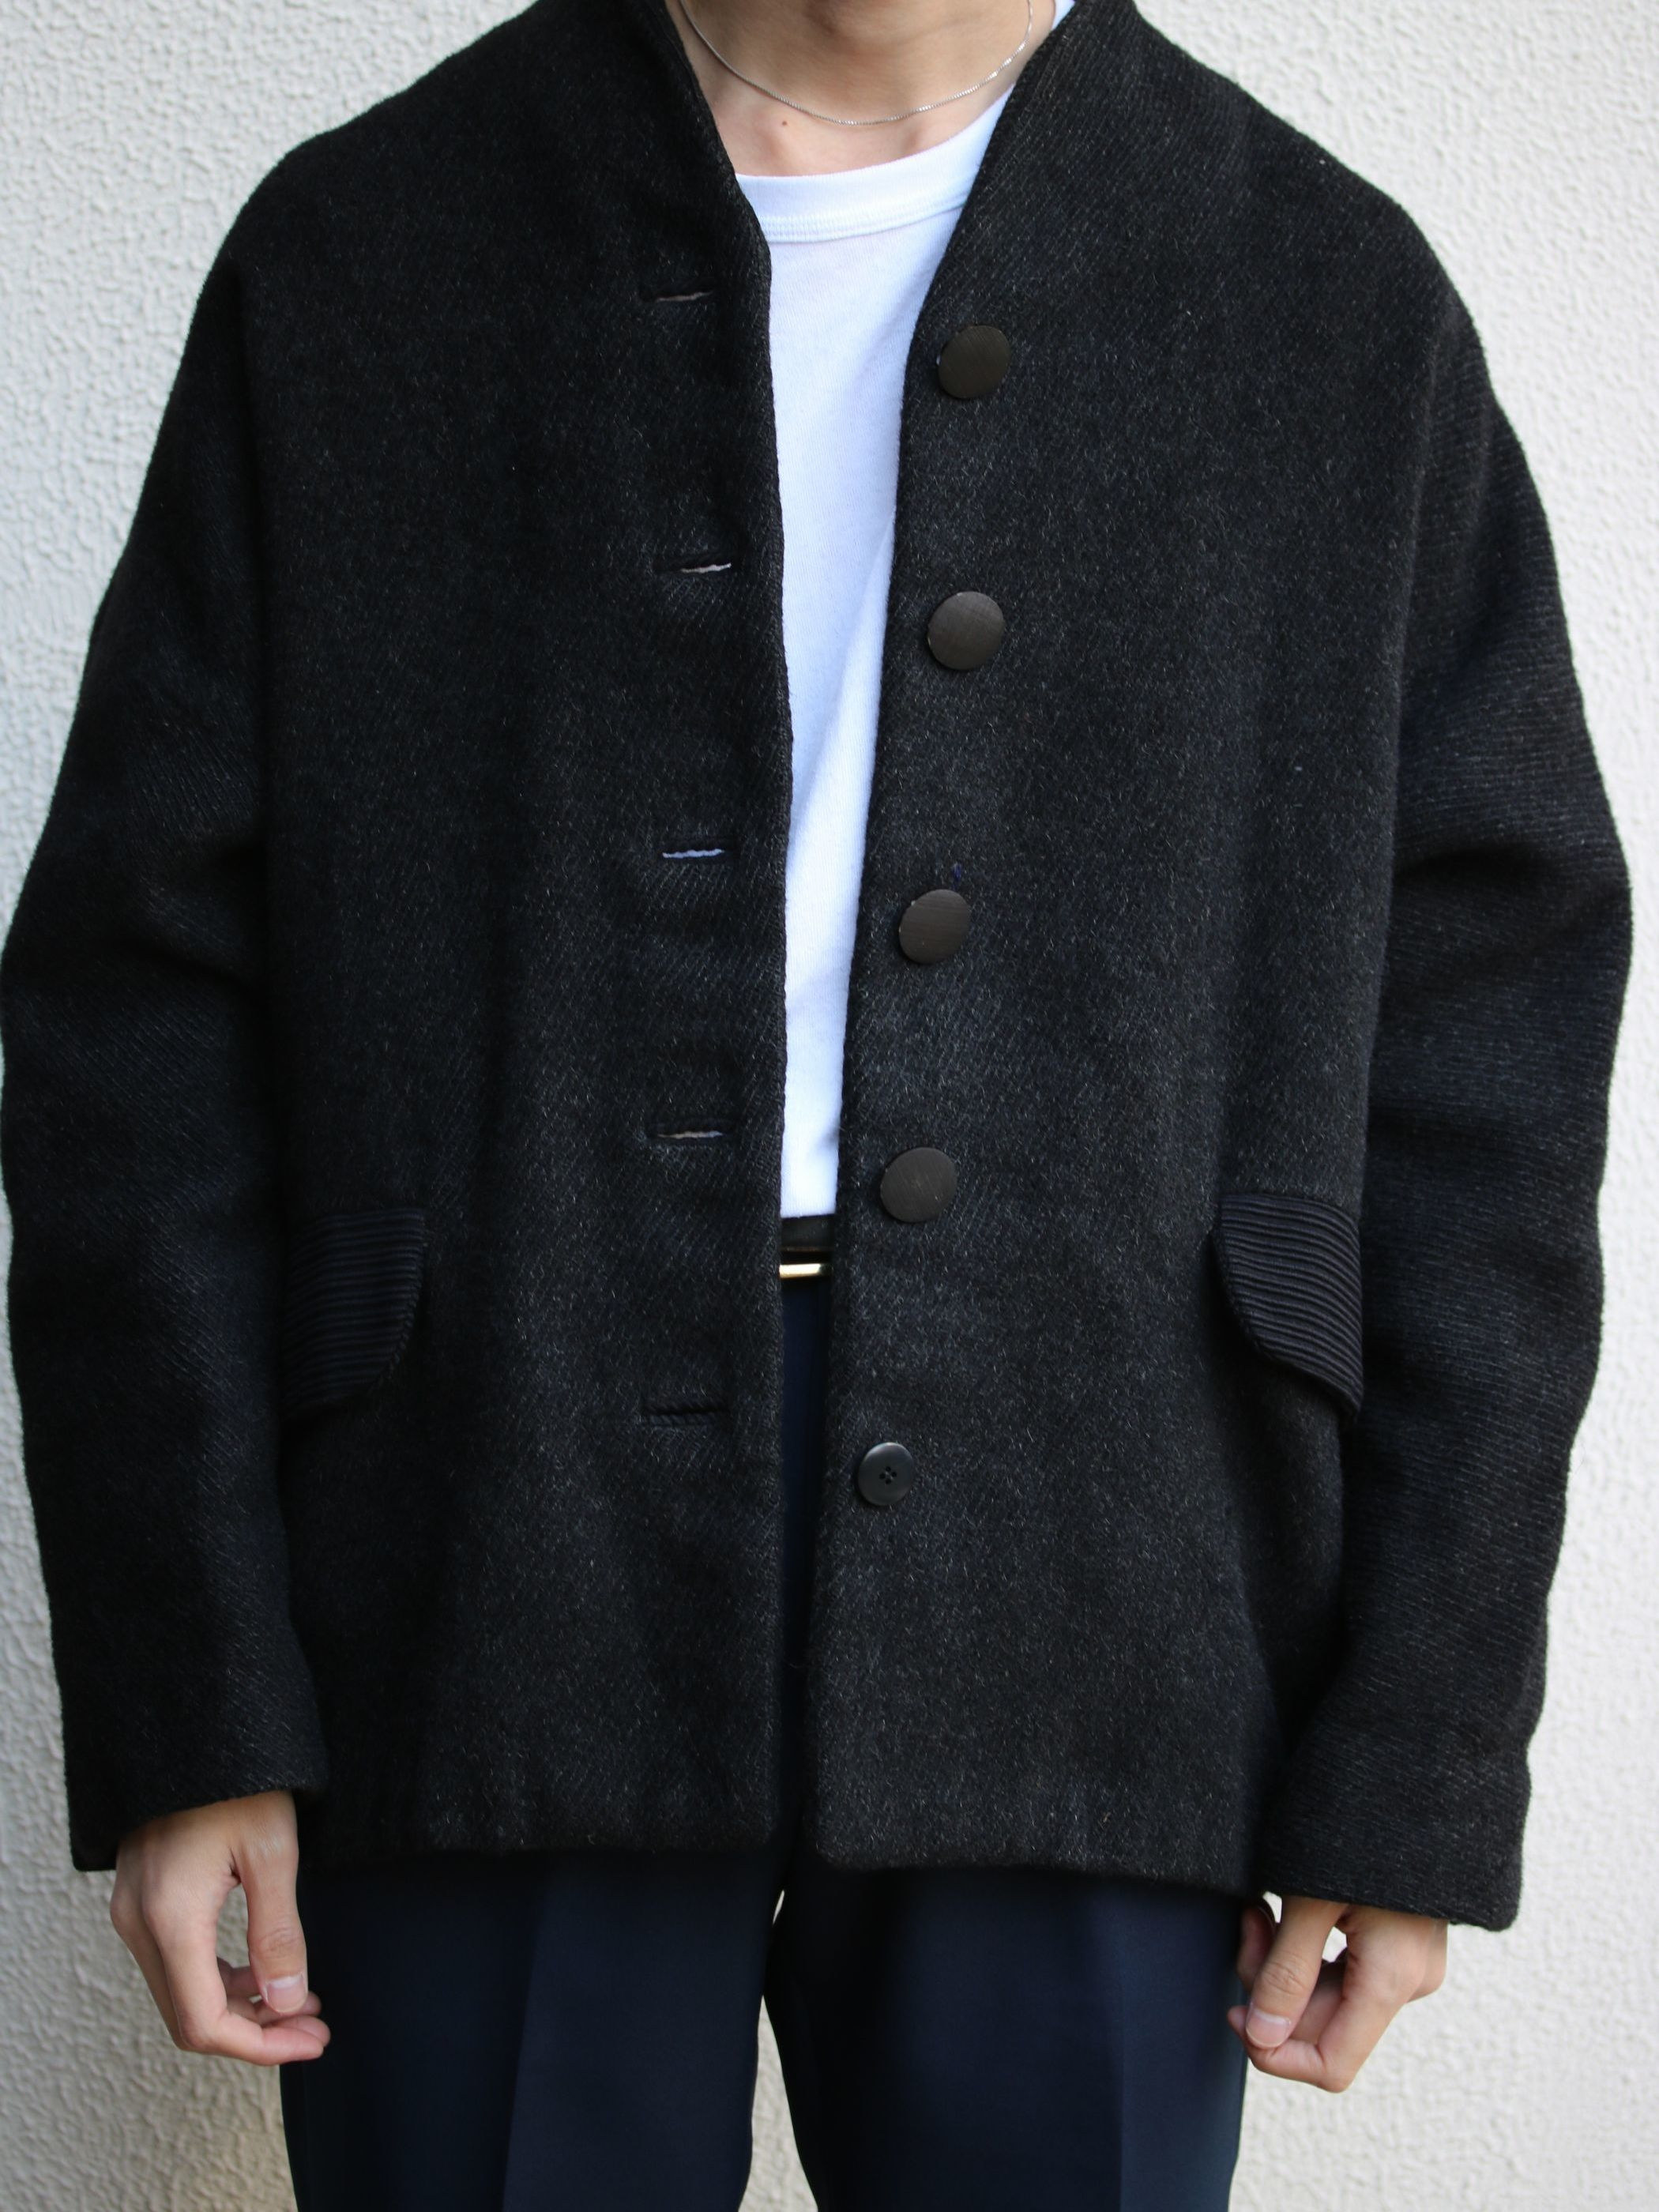 1960-70s / No collar jacket